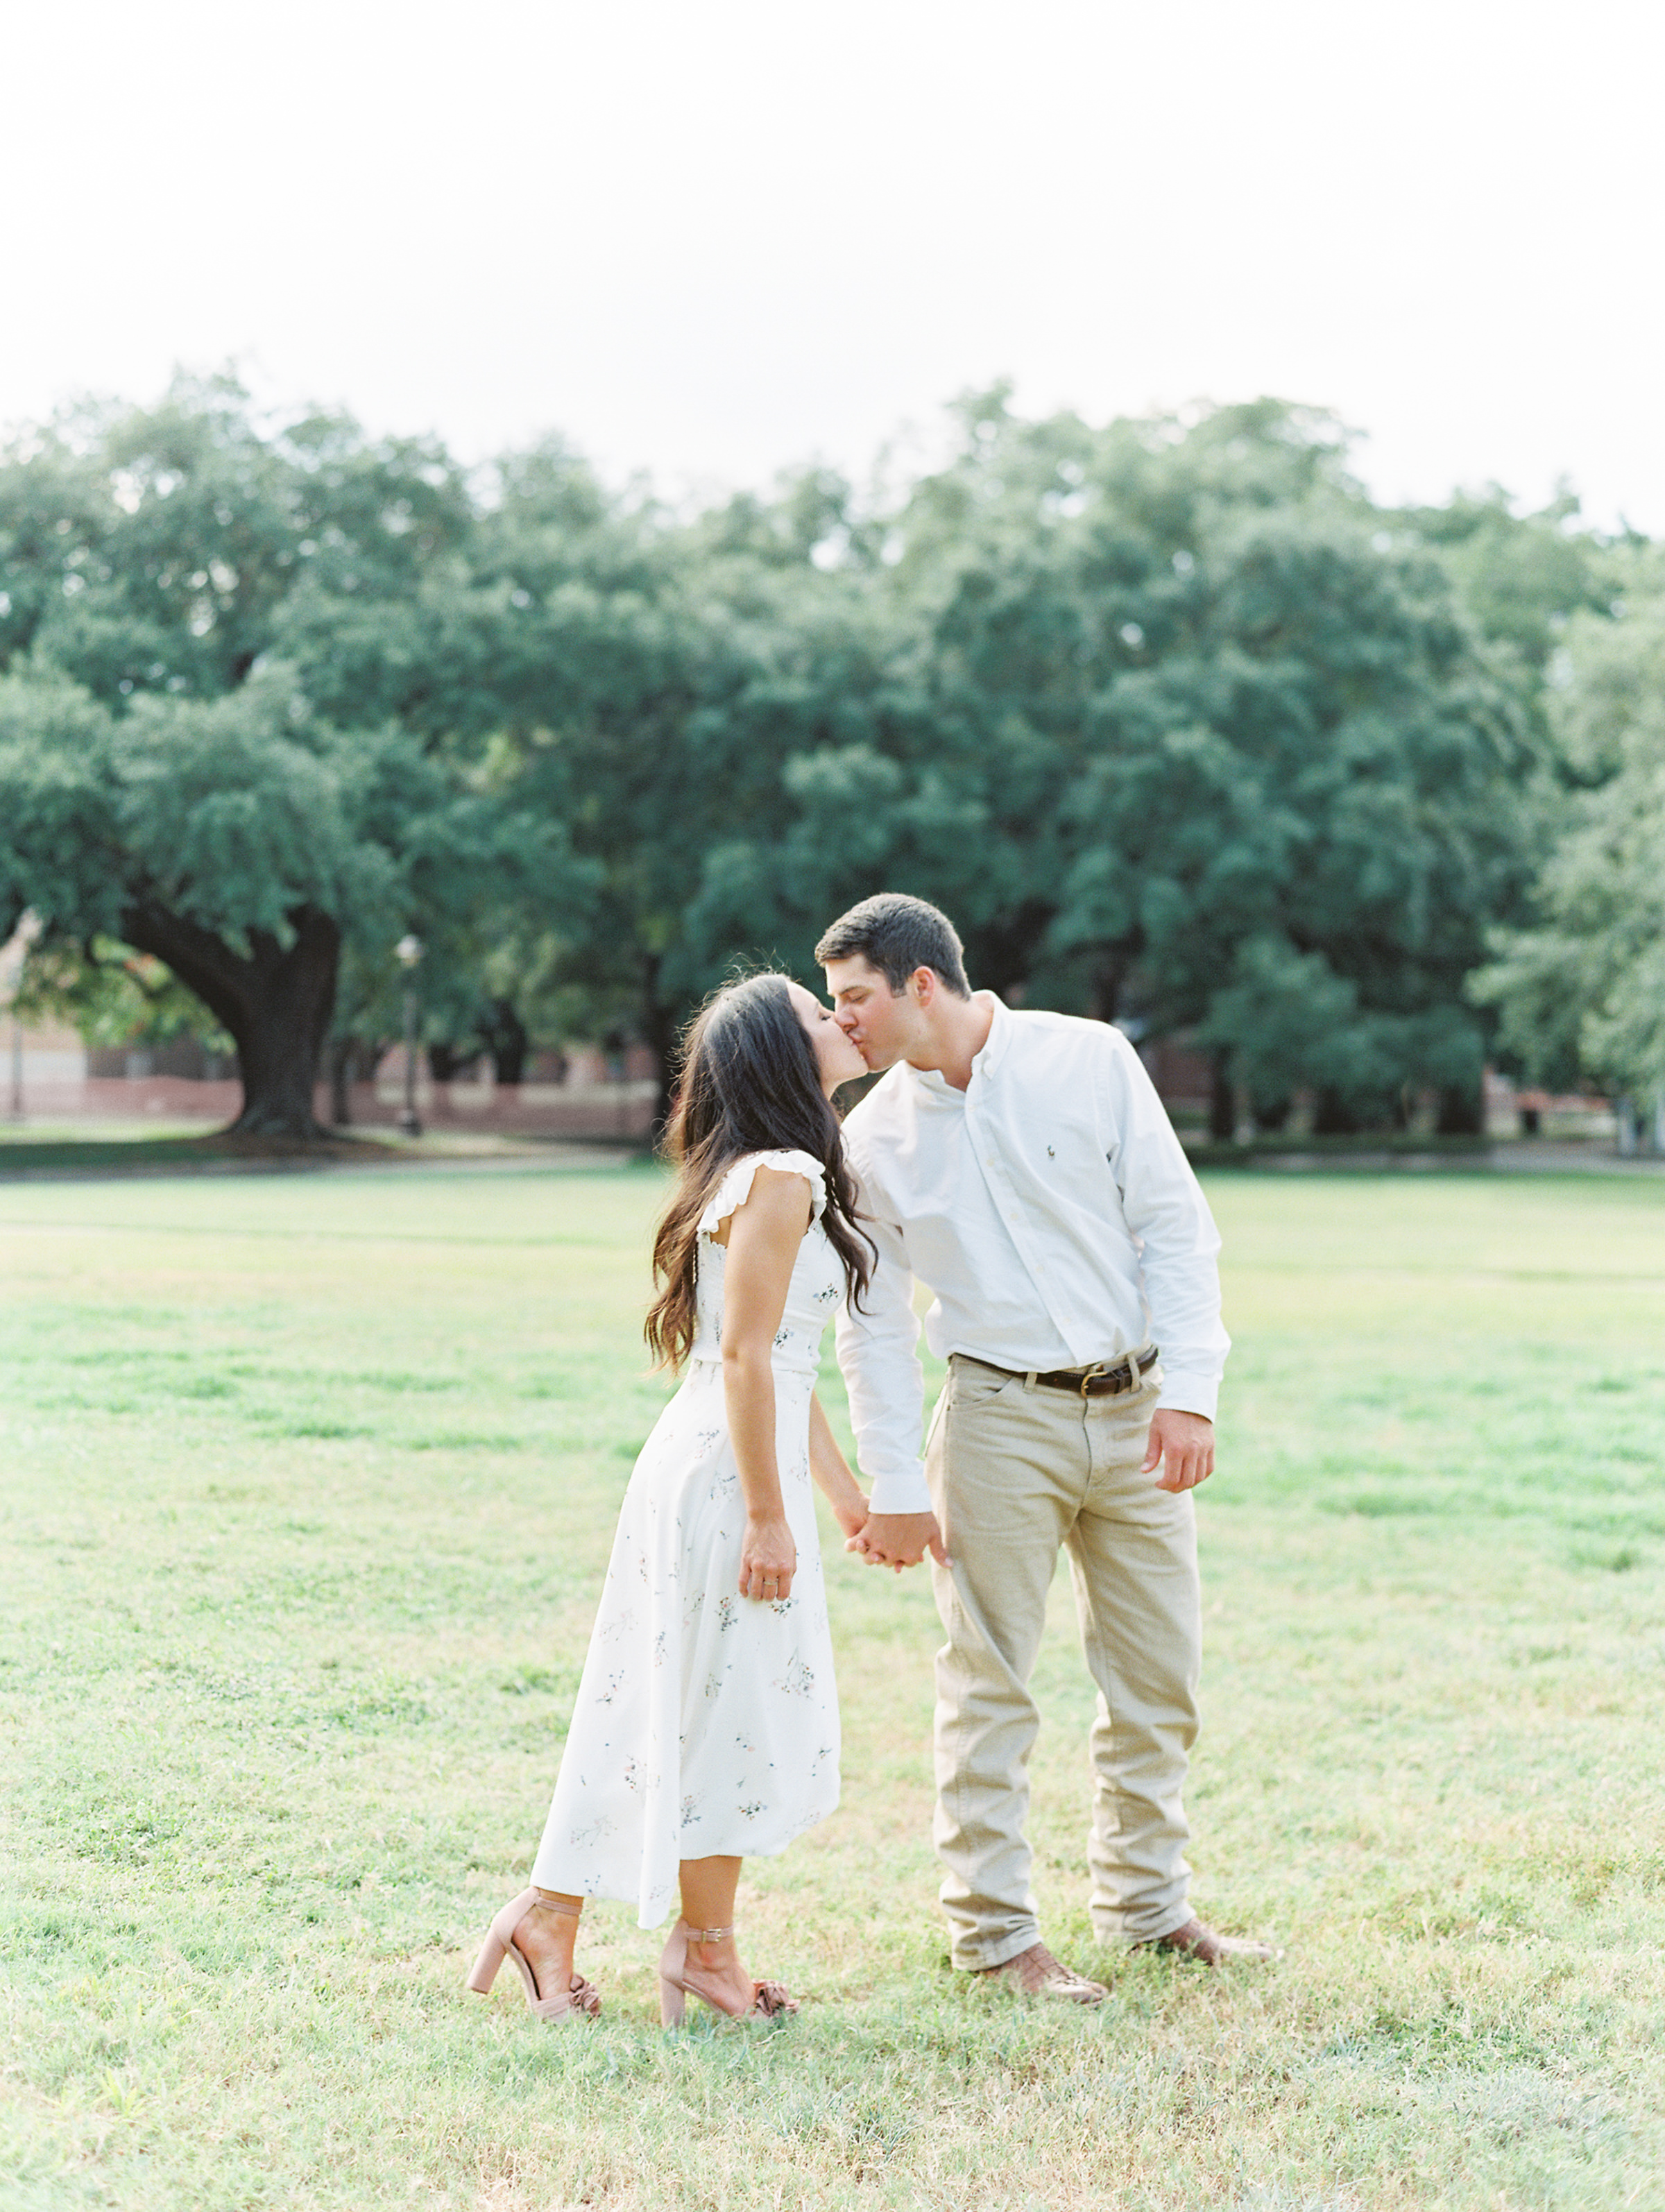 Makenzie & Mason - HOUSTON, TEXAS